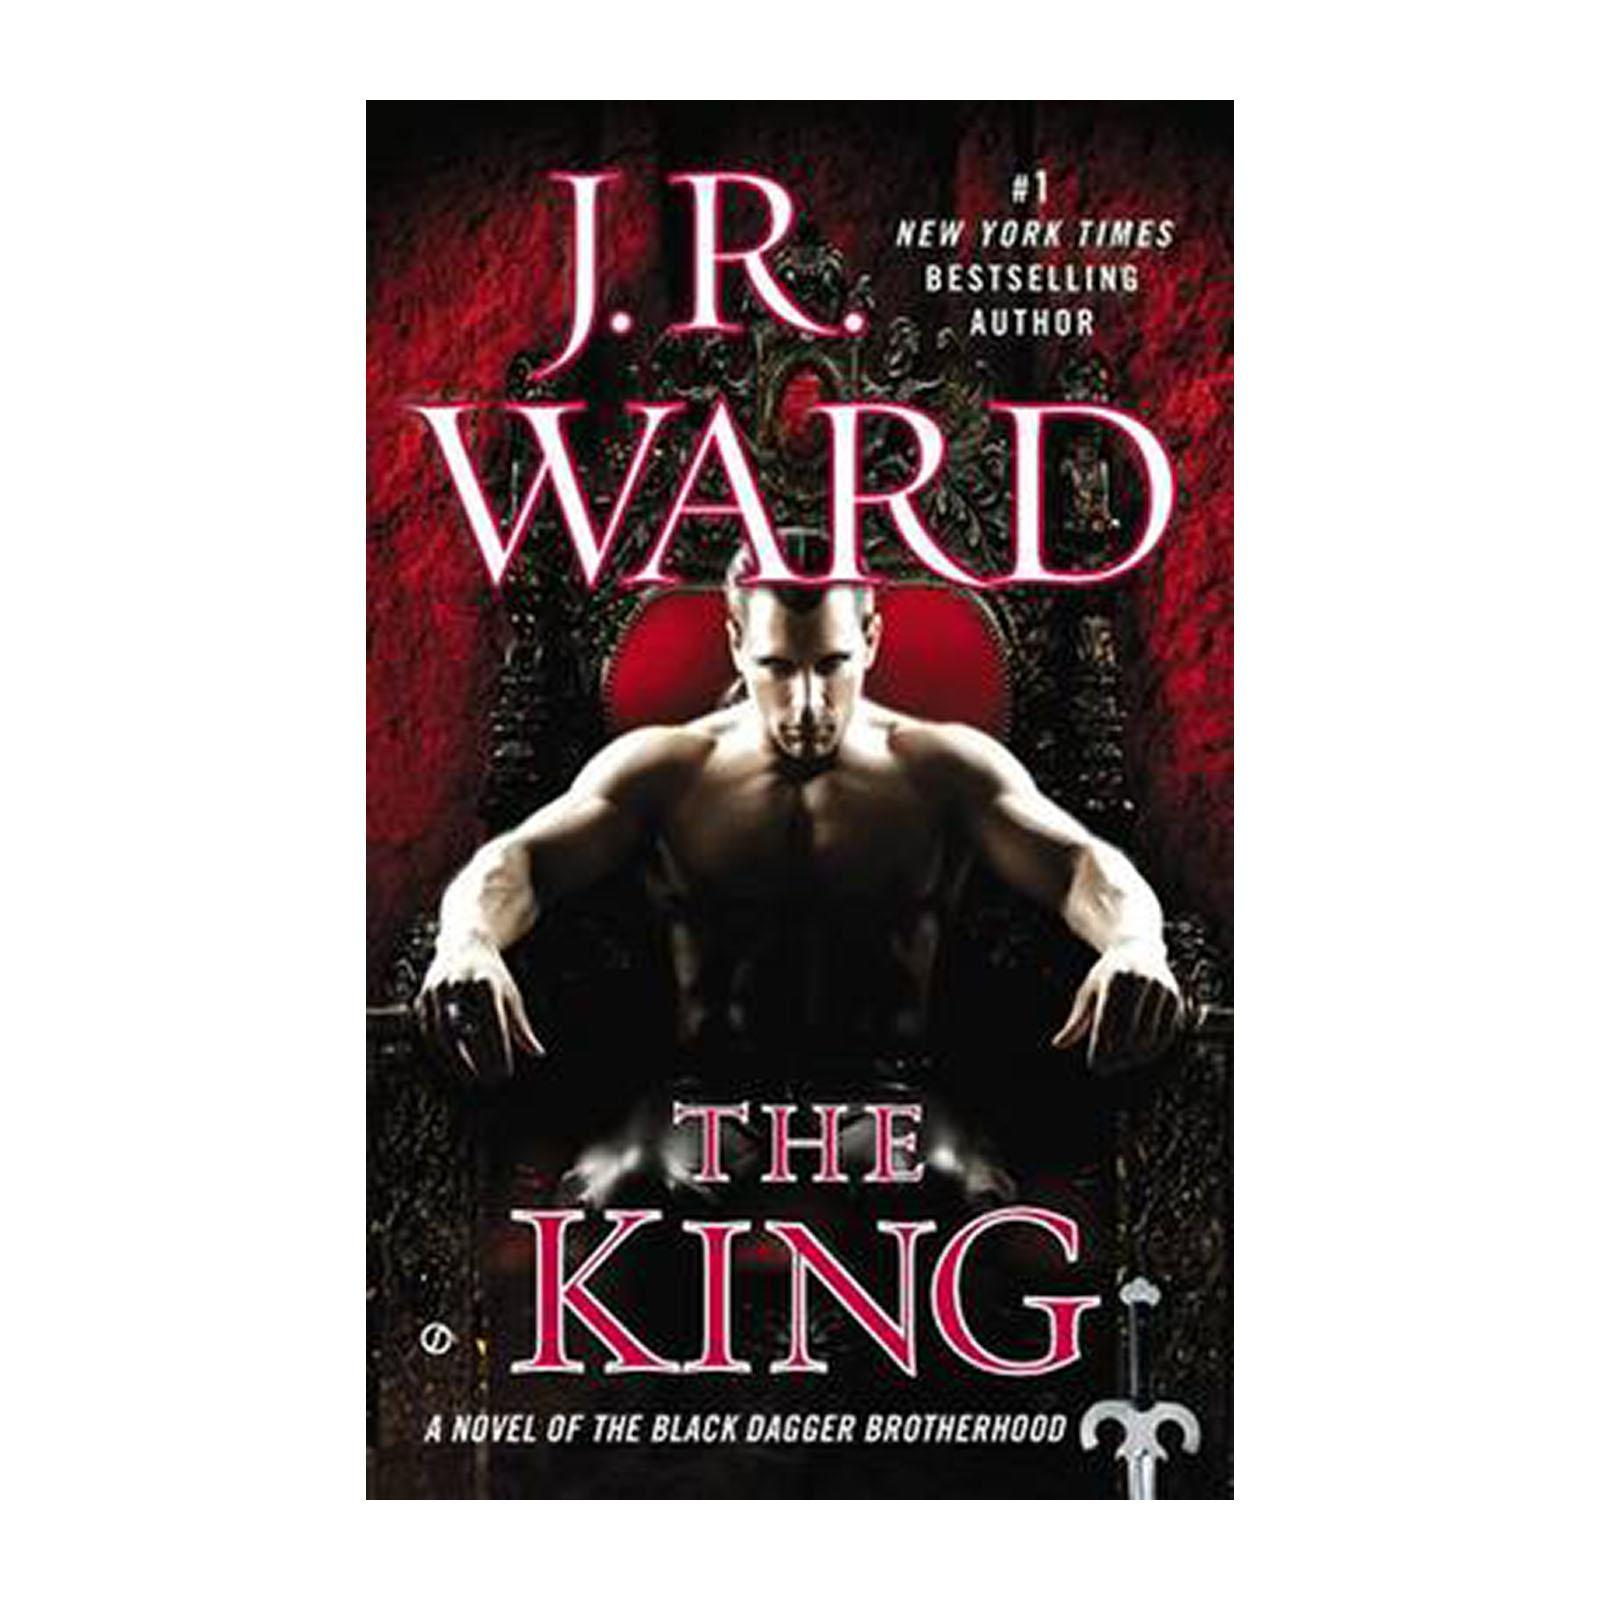 The King: A Novel Of The Black Dagger Brotherhood (Paperback)